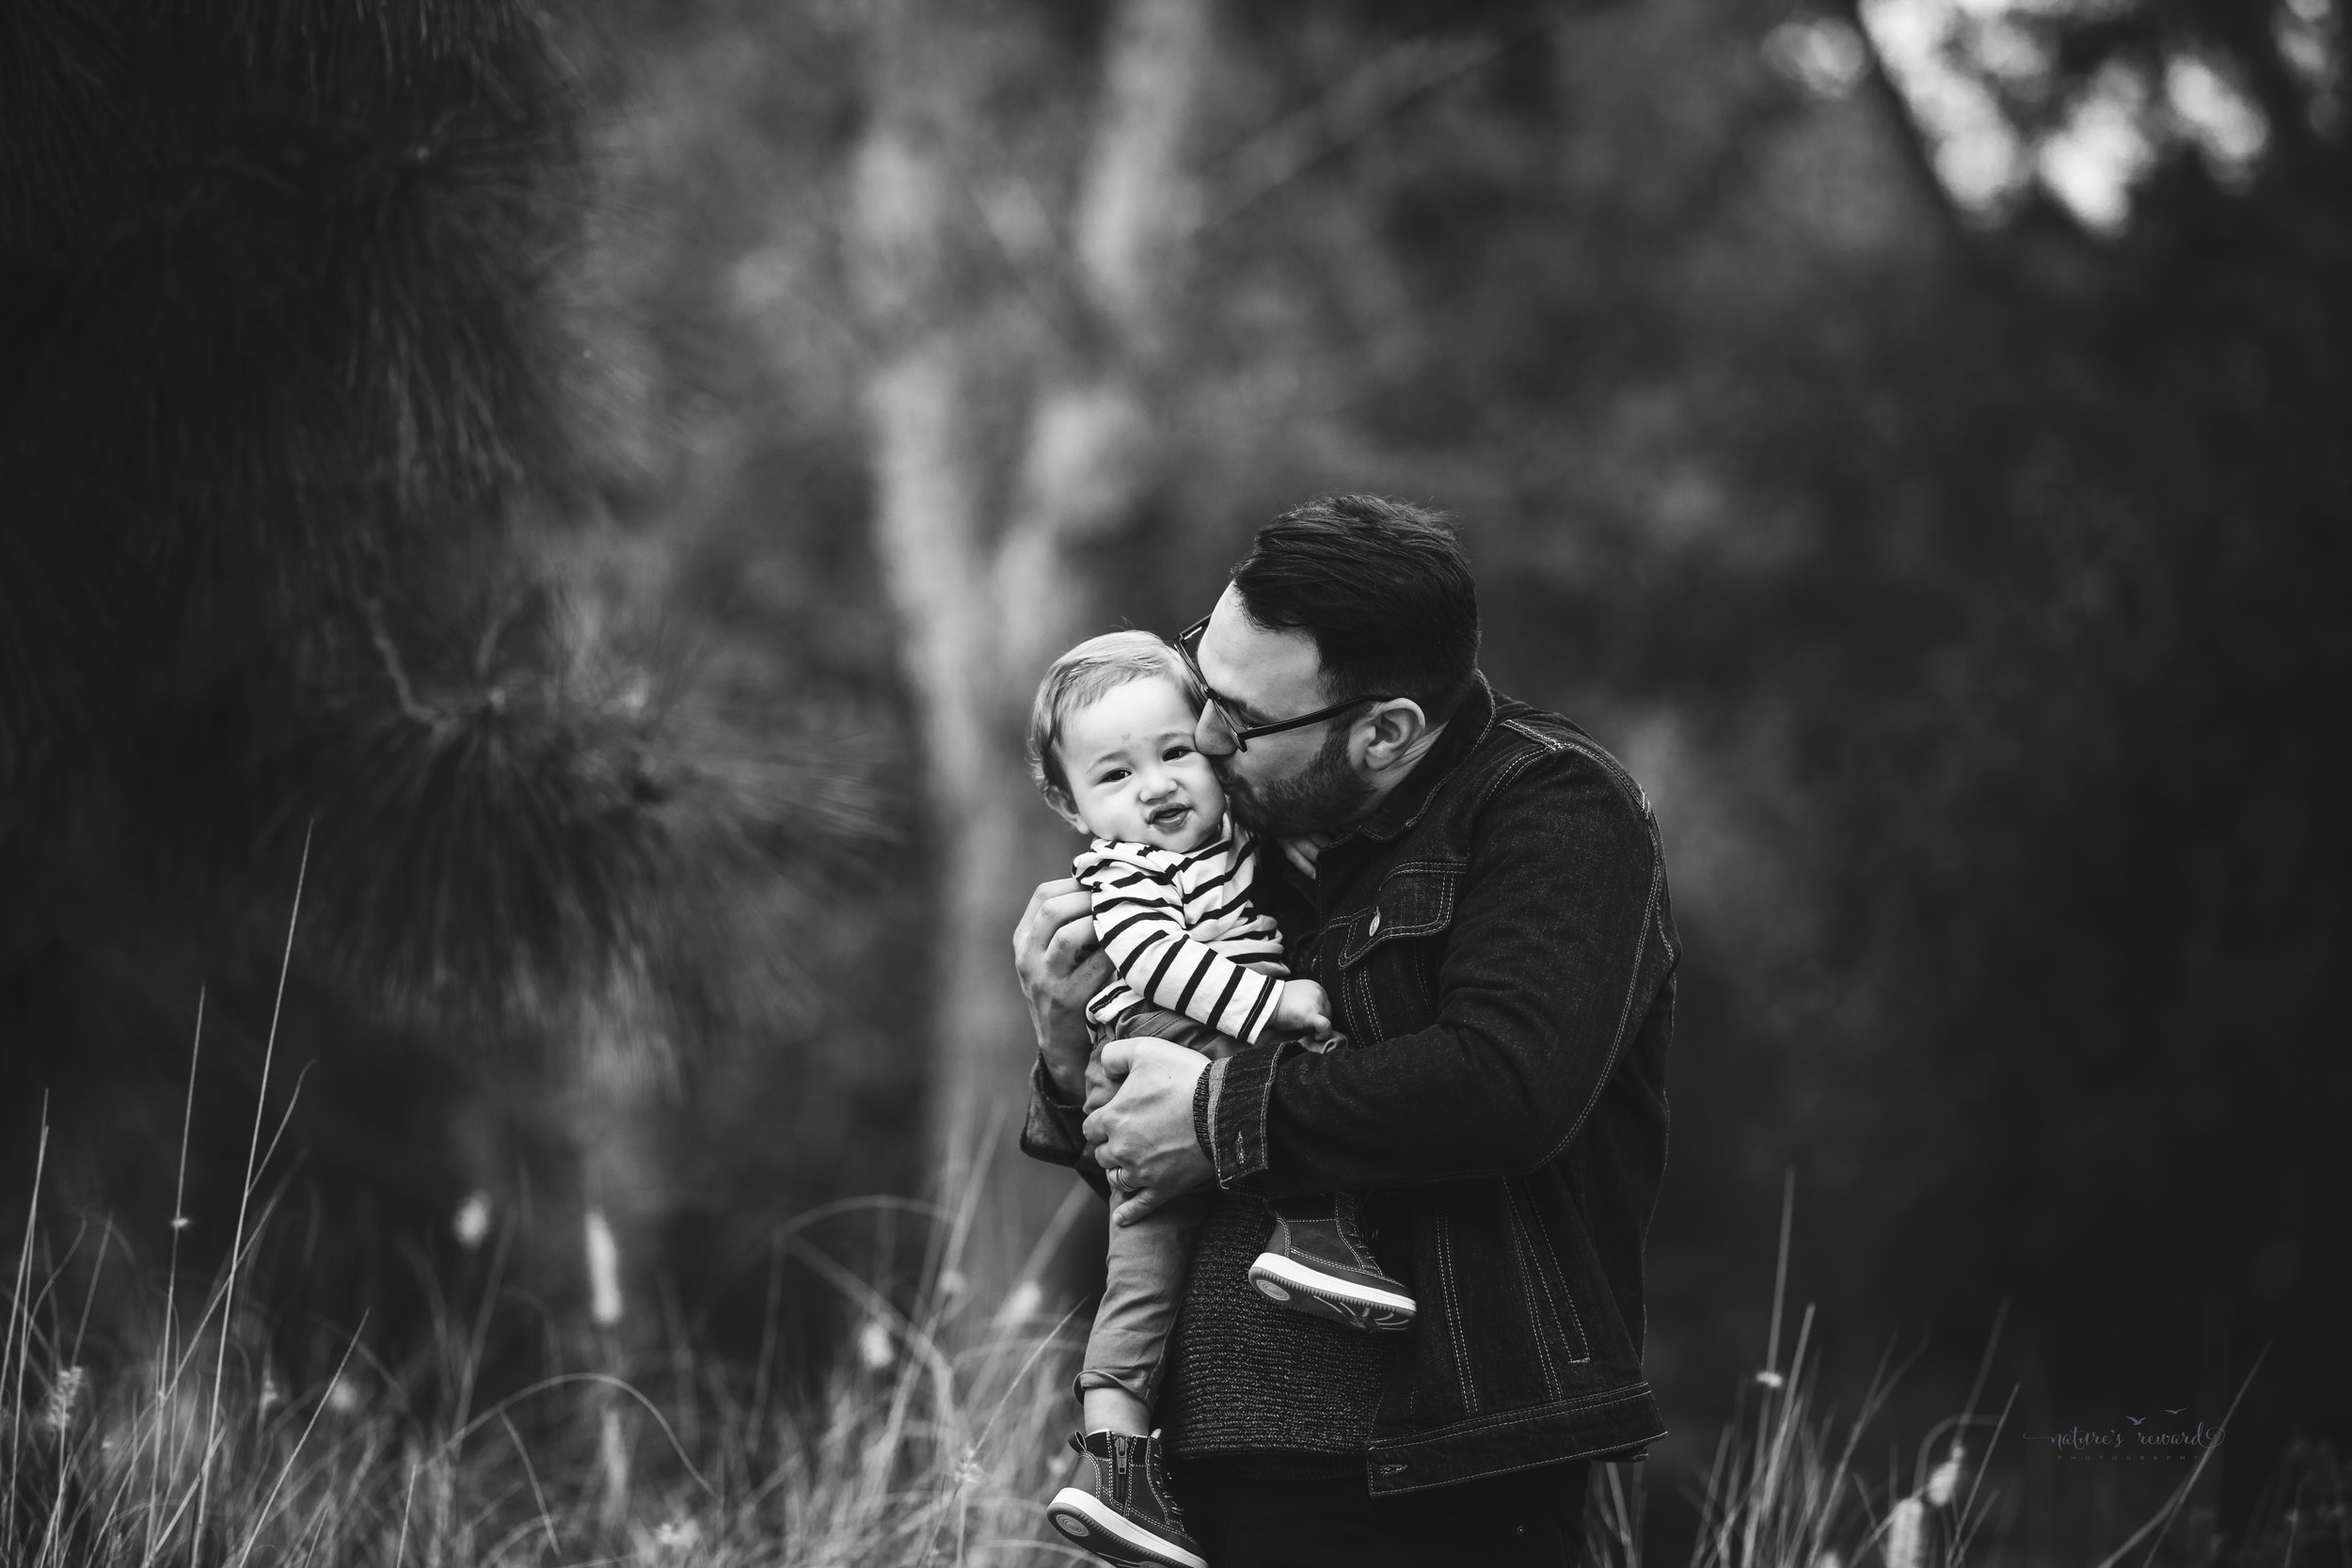 Baby boy in tans and blues with his father in a black and white portrait by Nature's reward Photography